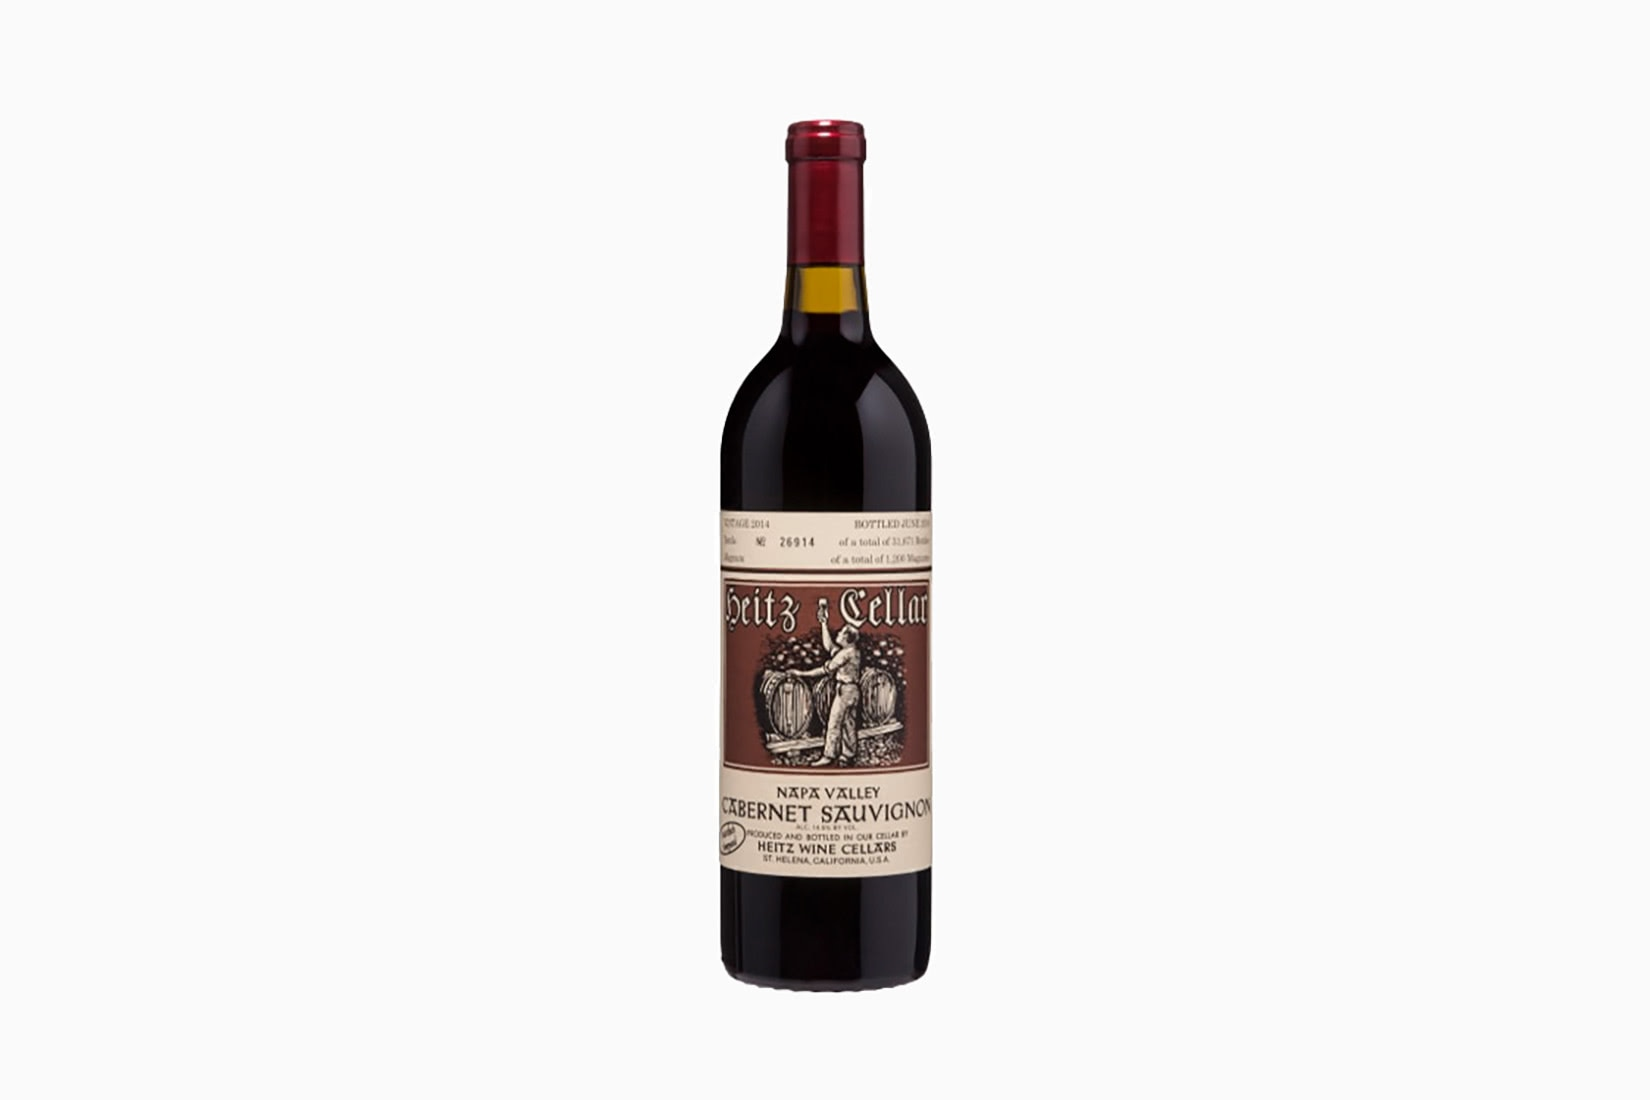 best wine heitz cellar martha vineyard cabernet sauvignon - Luxe Digital